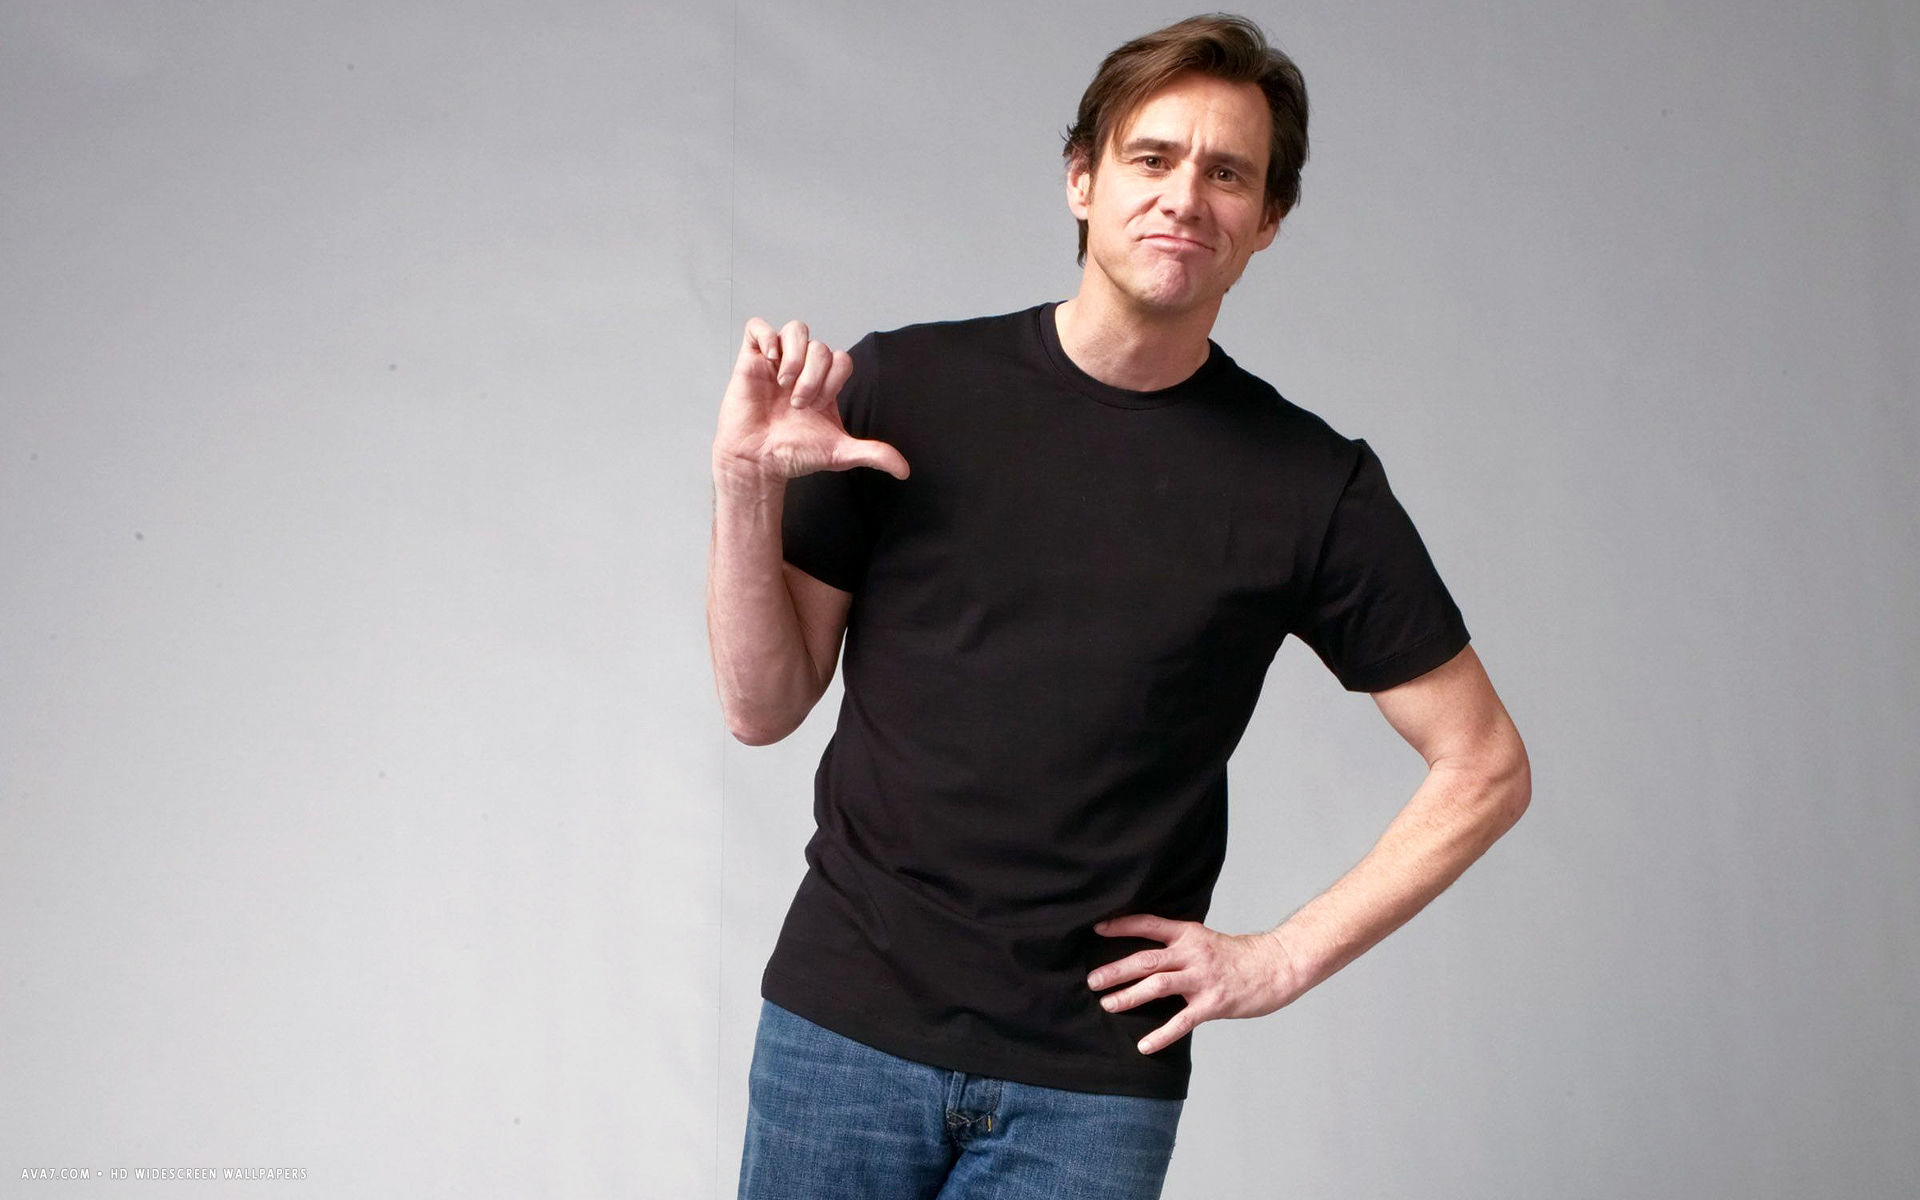 The excitable, mad and hyperactive Jim Carrey has just been booked by Saturday Night Live (SNL) to return as host. Bill Hader officially confirmed it on ...